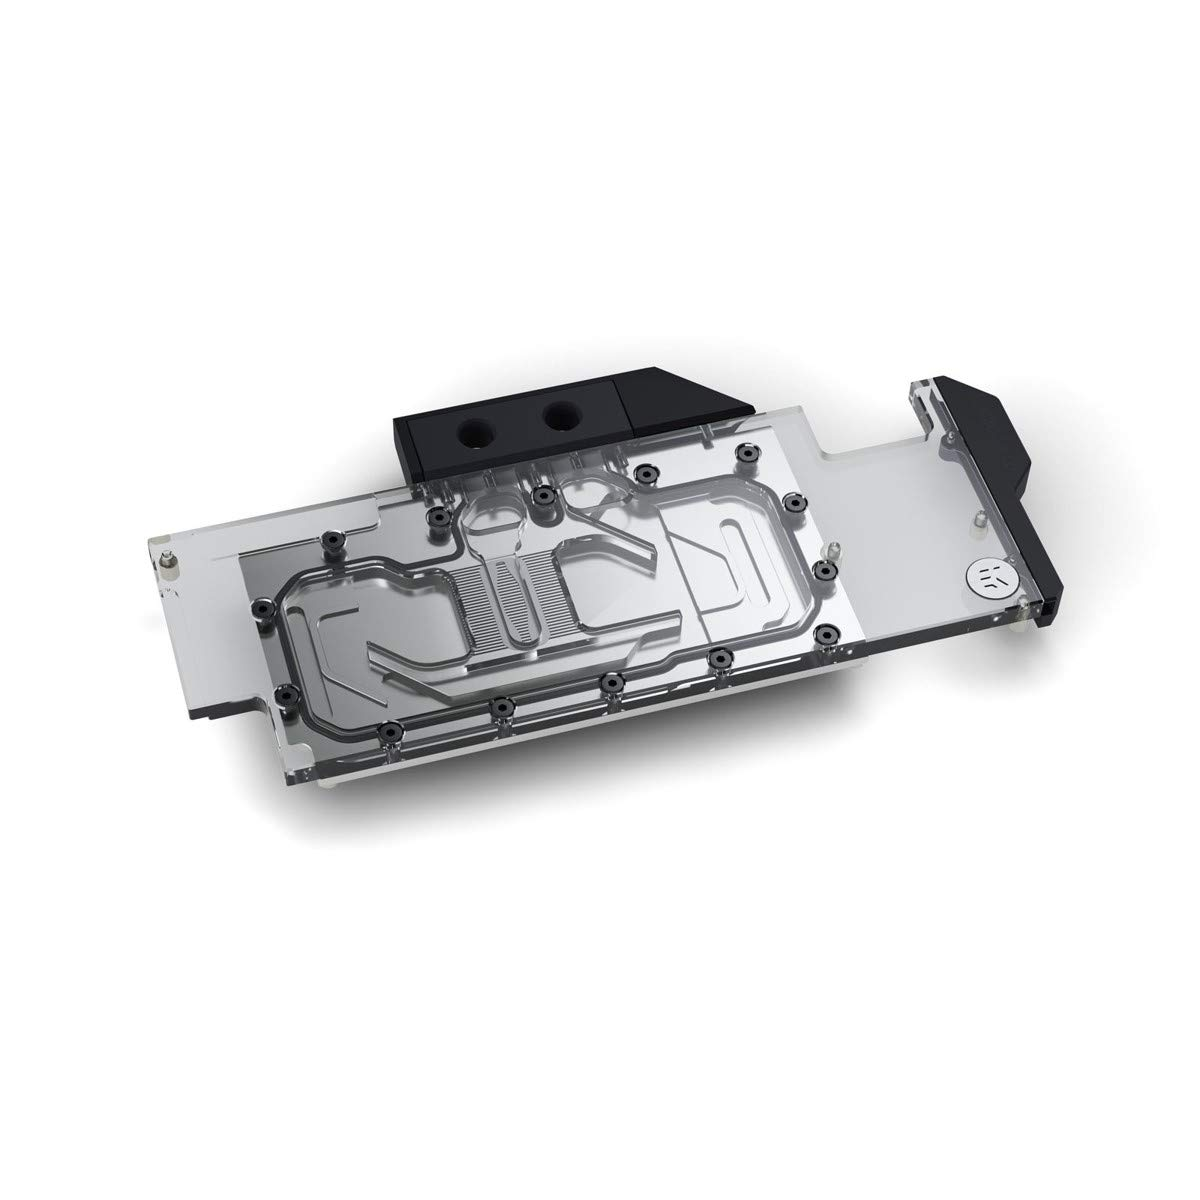 EKWB EK-Vector RTX 2080 Ti GPU Waterblock, Nickel/Plexi by EKWB